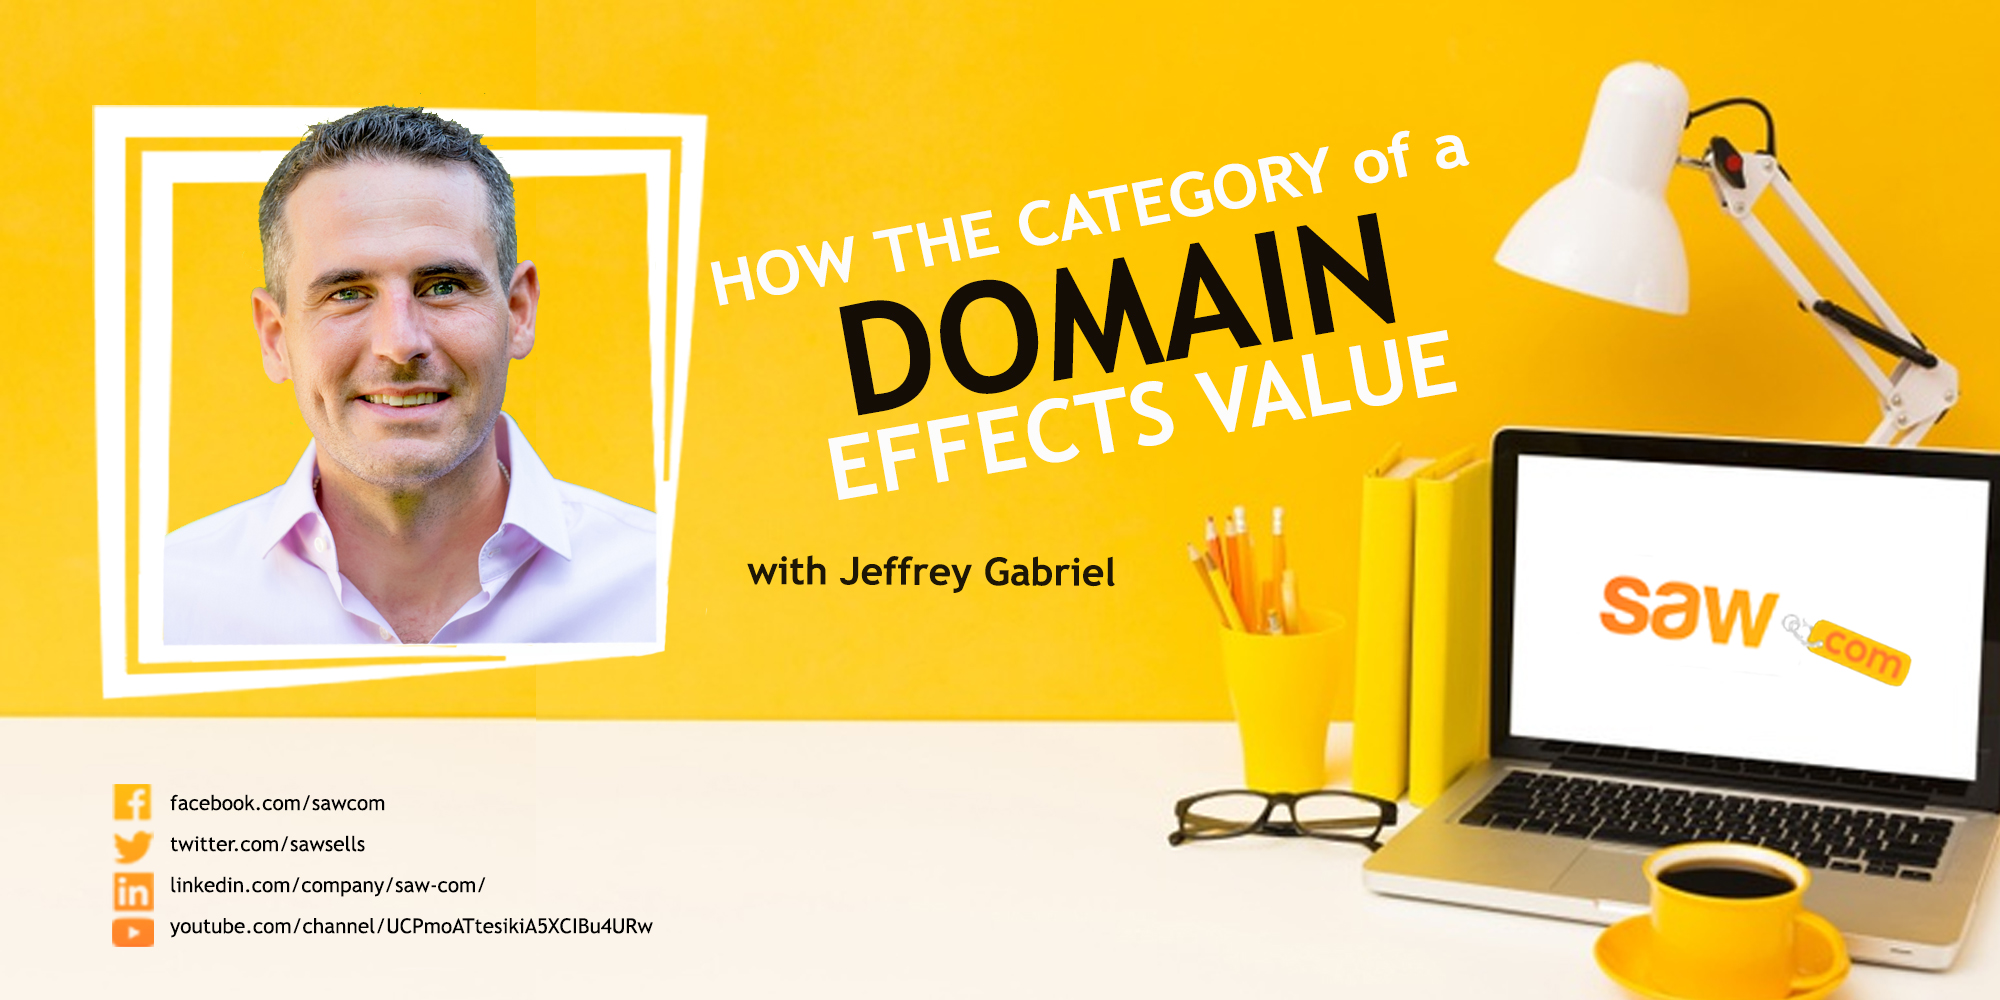 How the category of domain effects value.